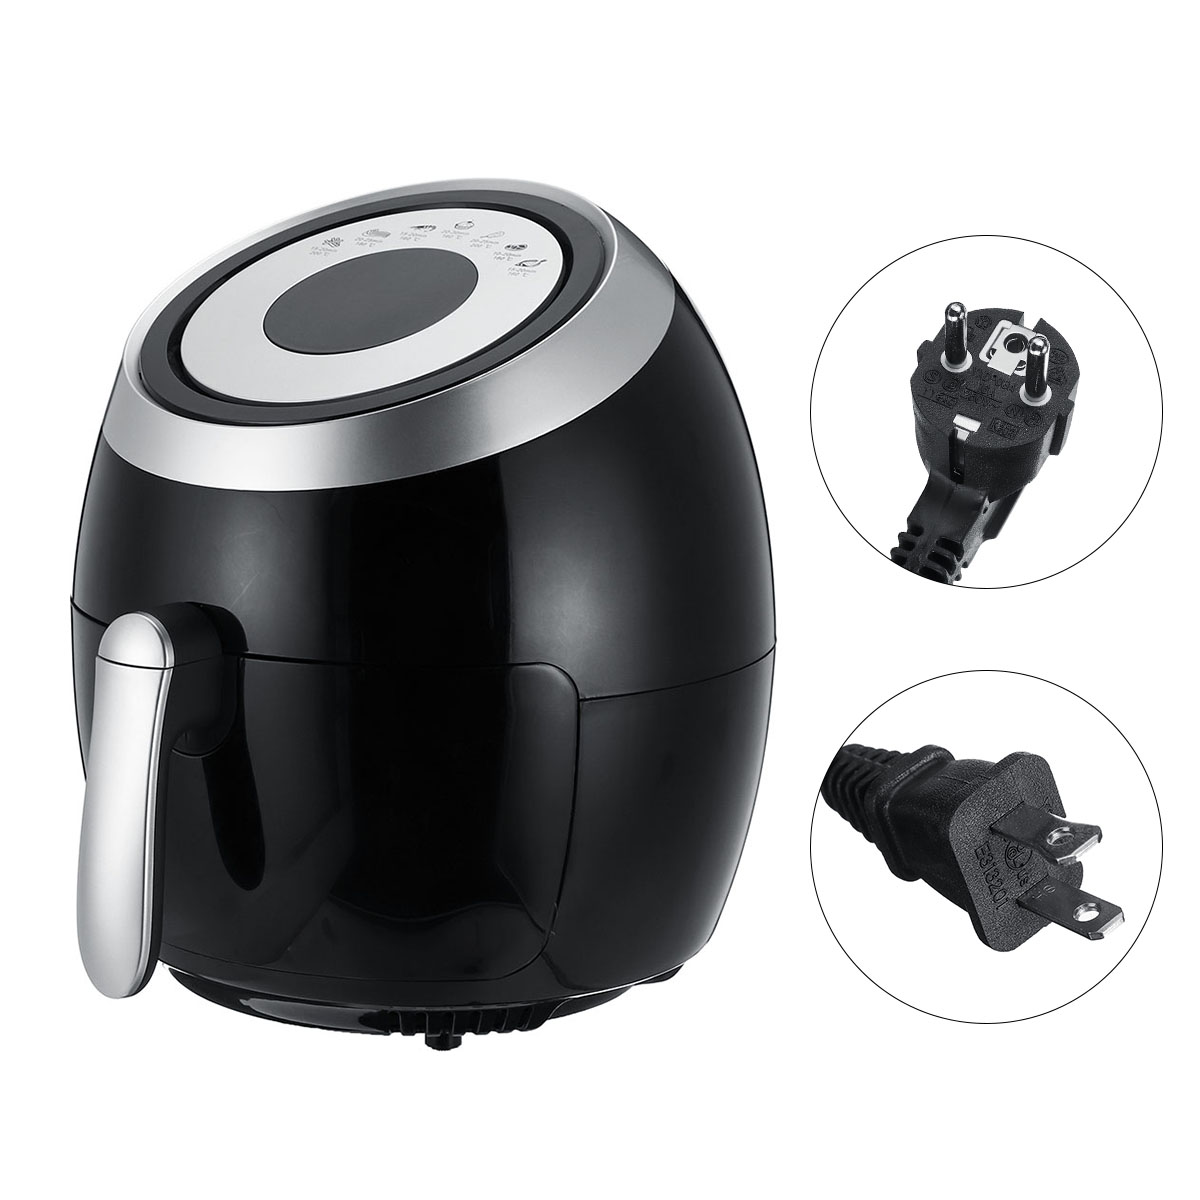 Air Fryer 5L Oil Free Low Fat Healthy Cooker Oven Food Frying Chip Fry Kitchen